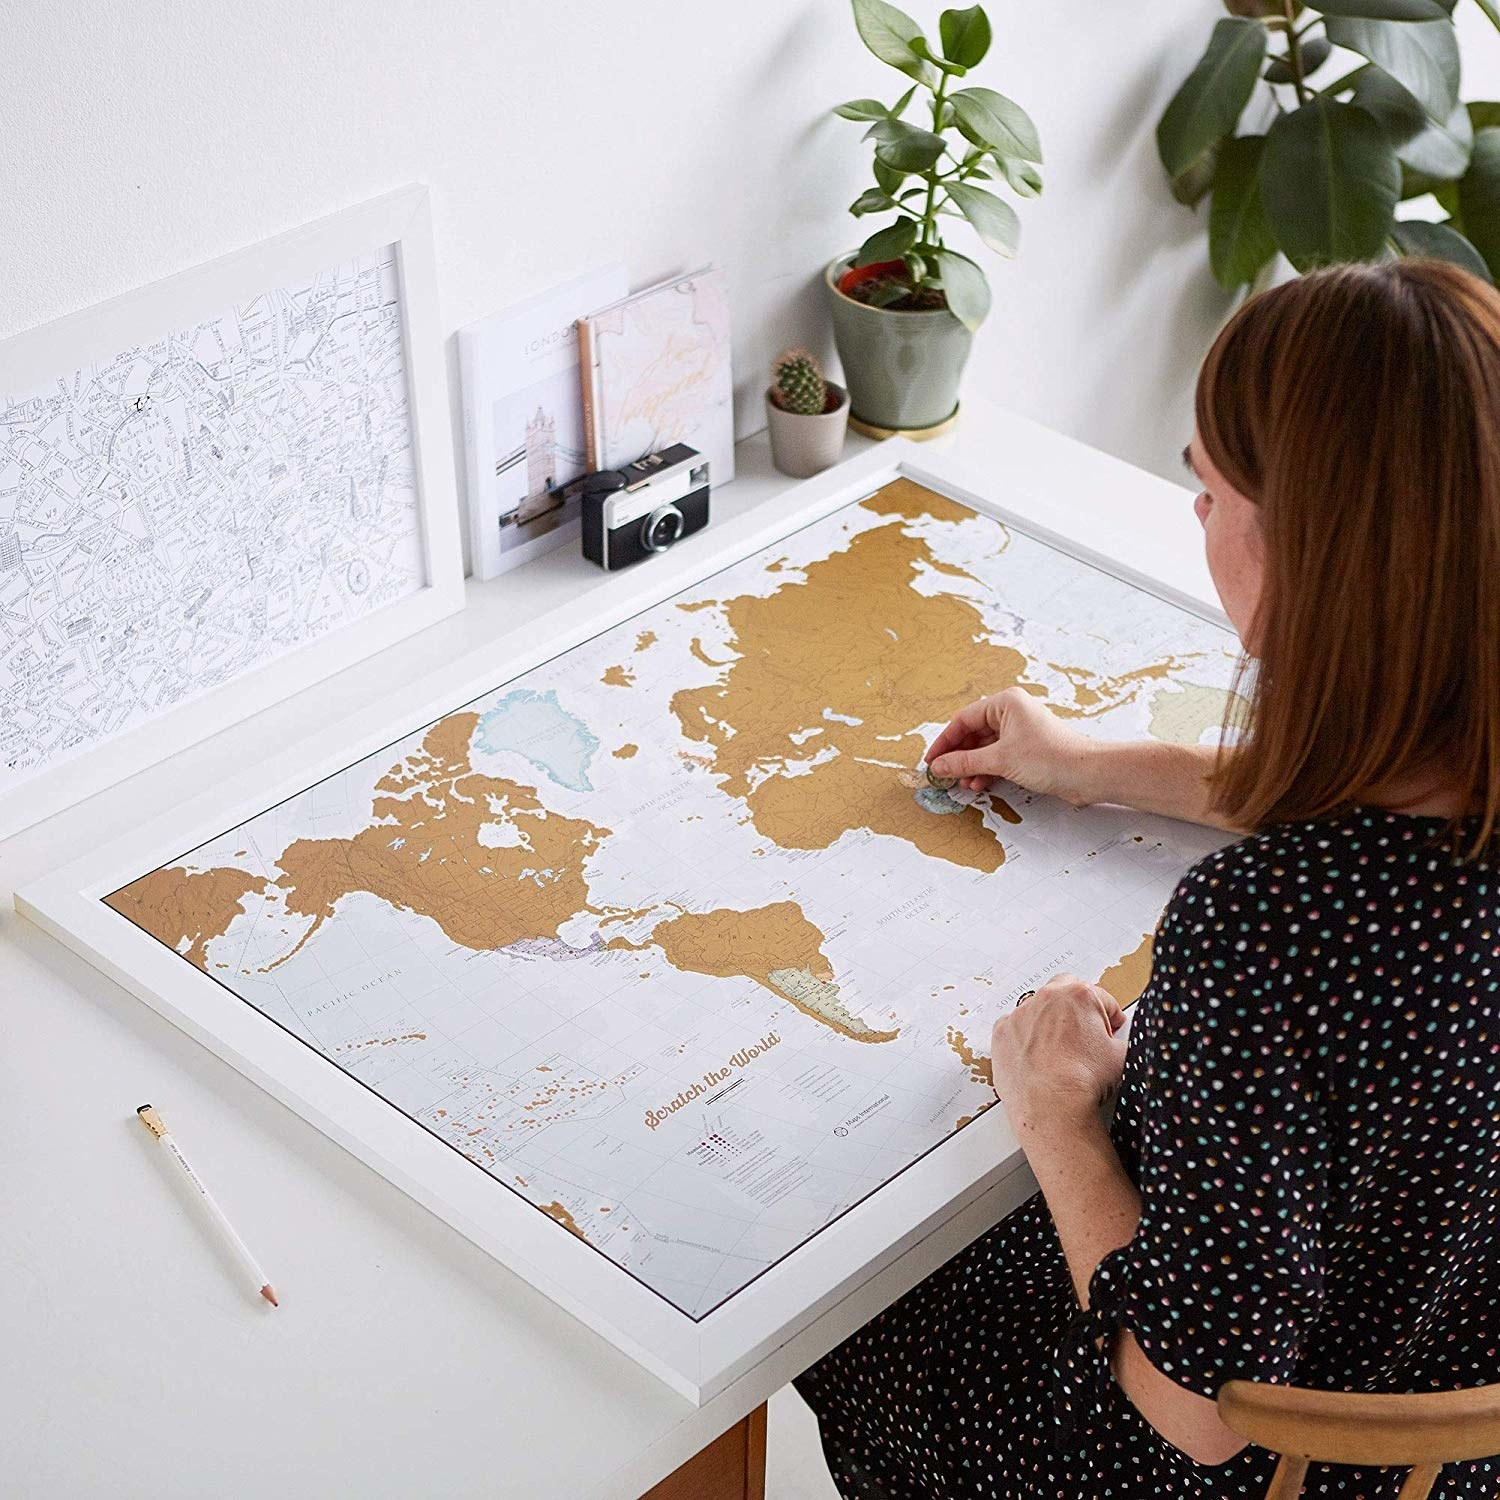 A model with the large world map on a table scratching off a country